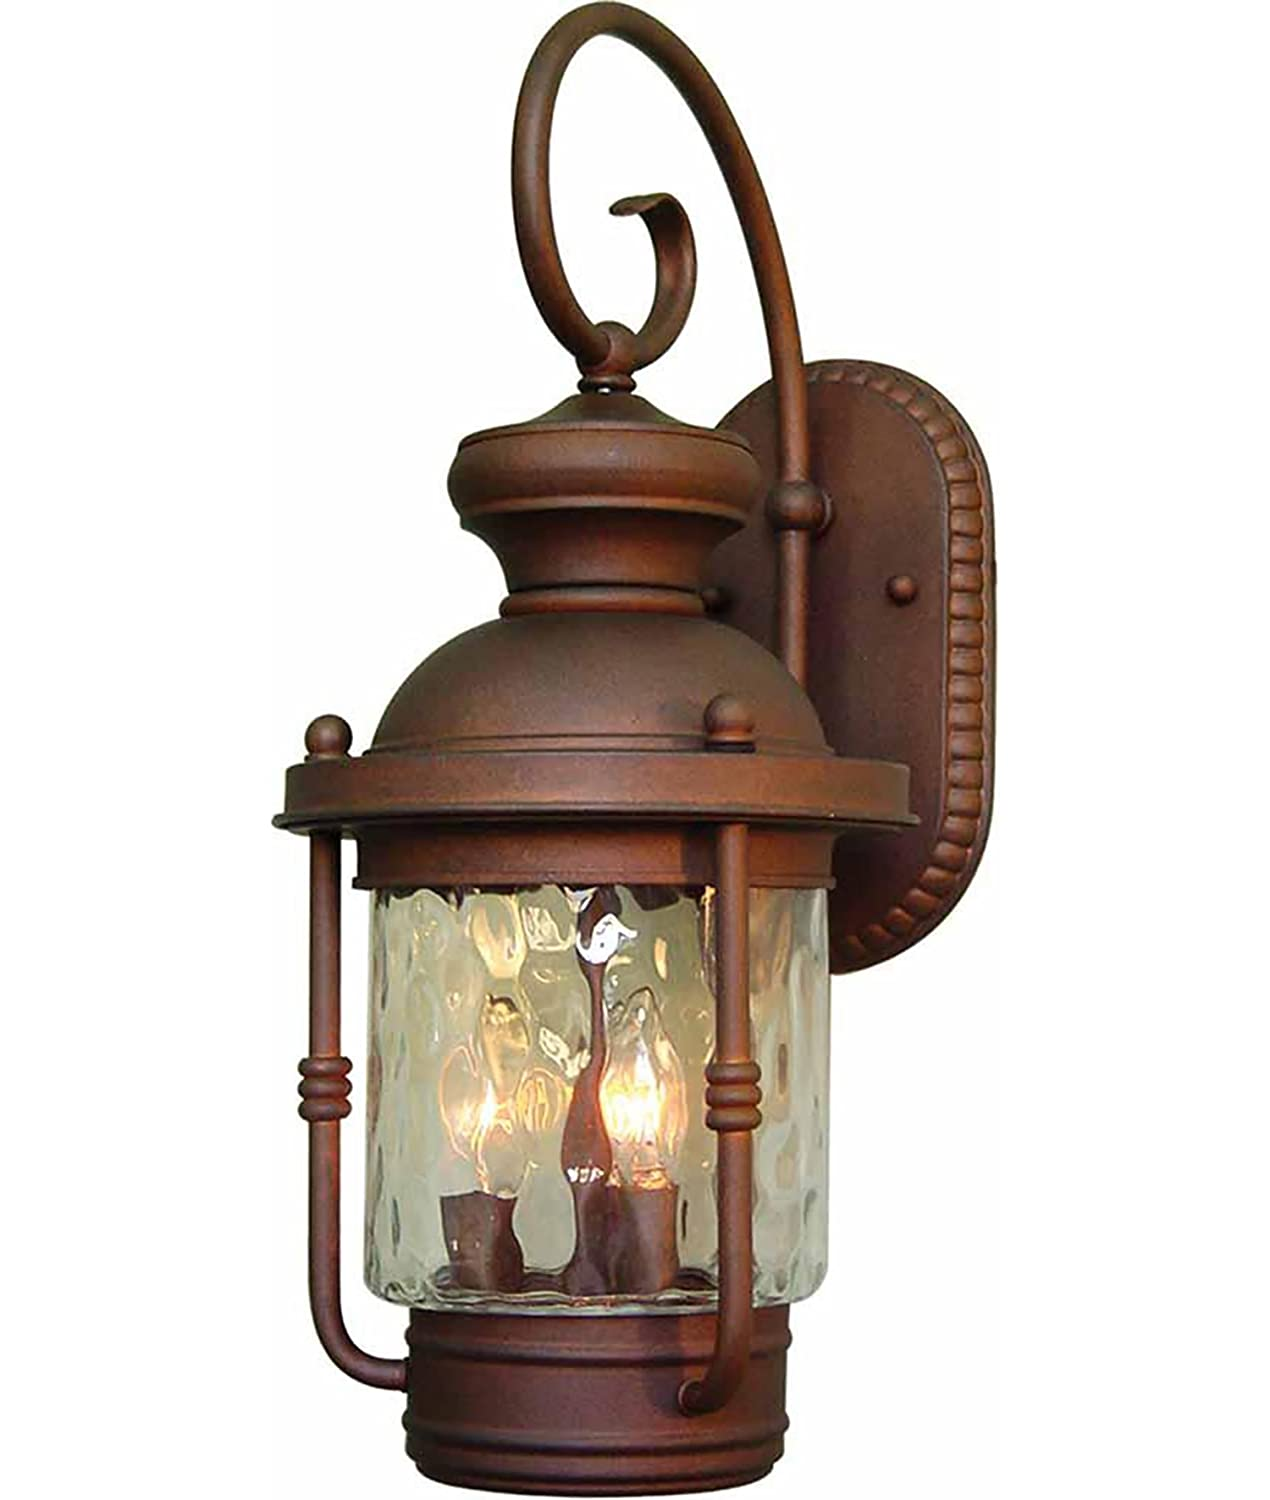 Volume Lighting V8151-42 Outdoor Decorative, Burnished Bronze Finish by Volume Lighting B0002ZQPZC